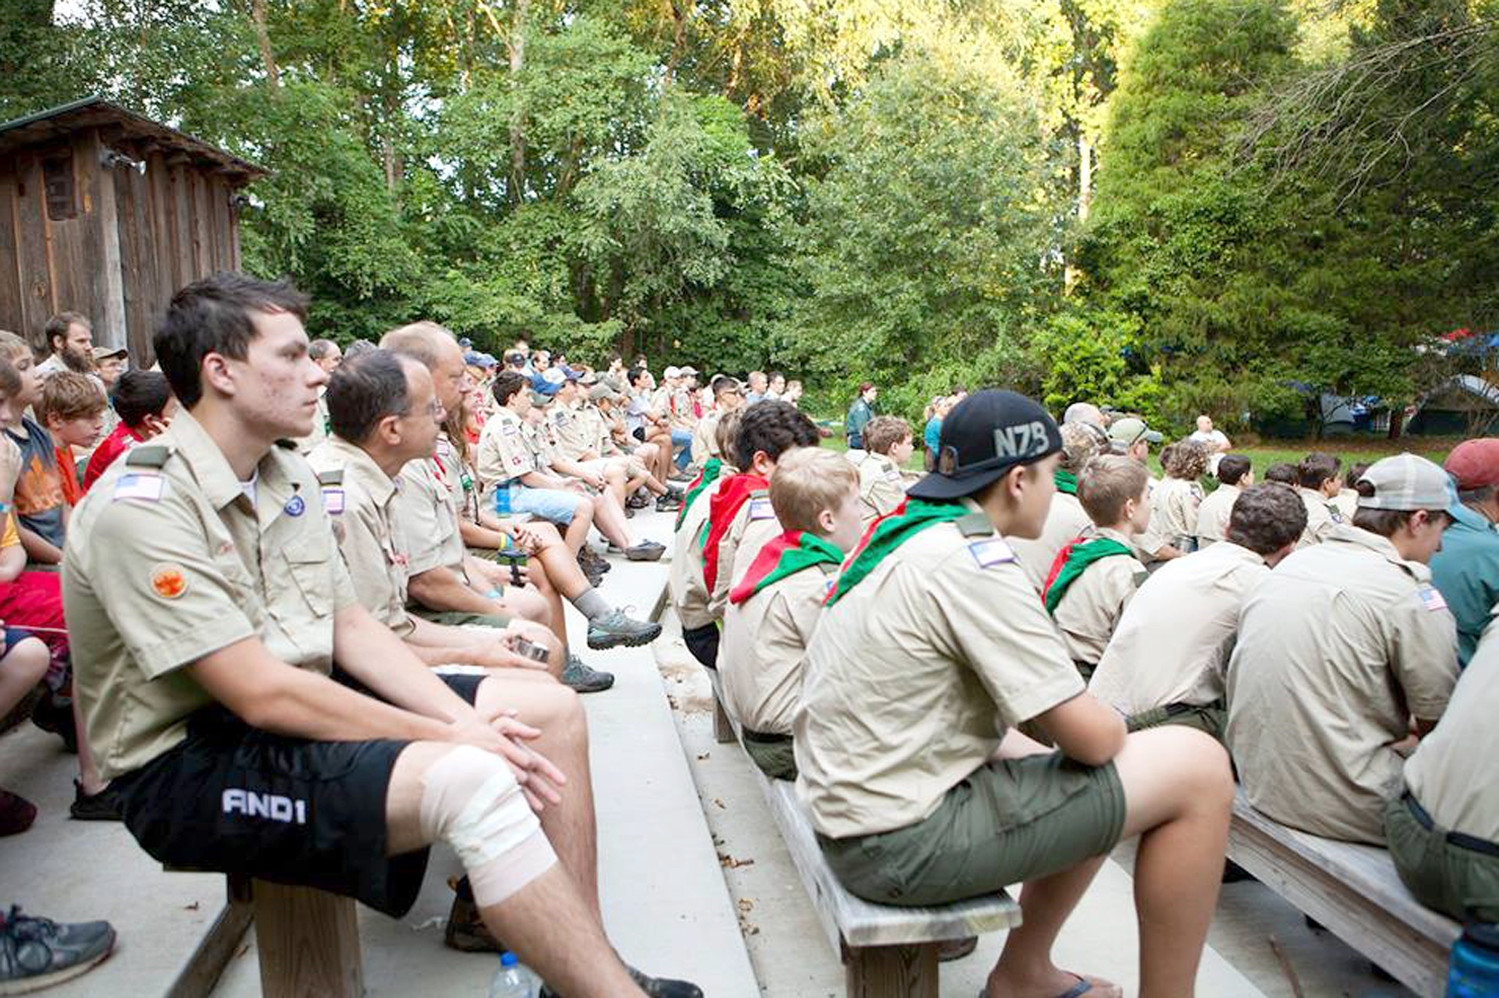 A large group of Boy Scouts meet at an outdoor amphitheater. Events such as the scouts' fundraiser help them raise money to continue mentoring young minds and helping the community as a result.